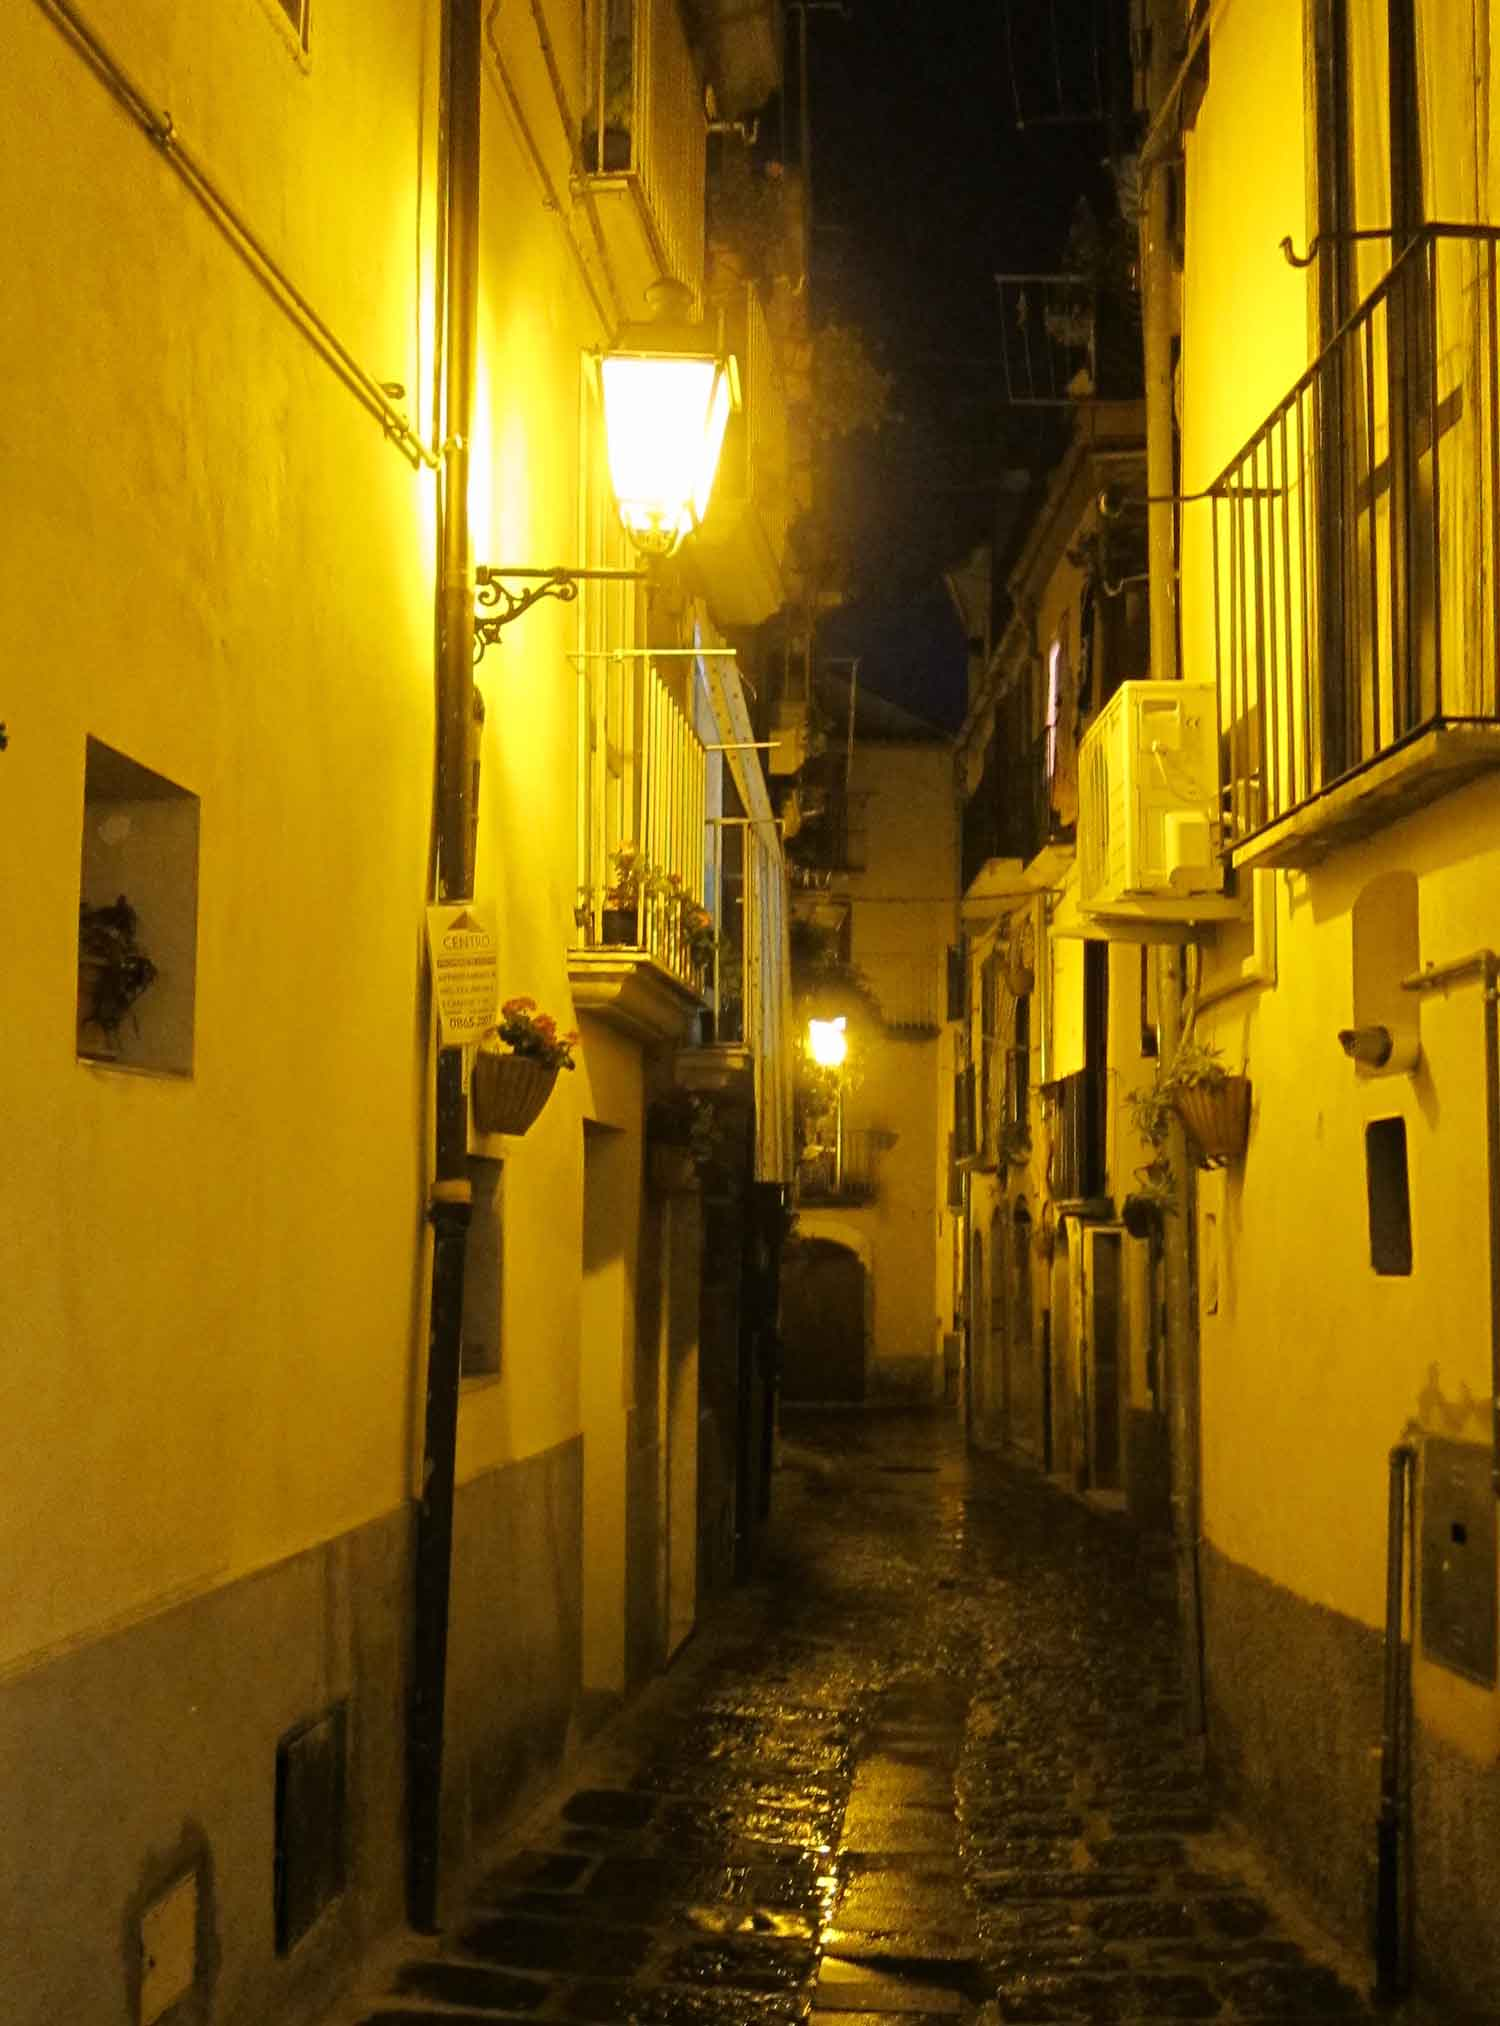 The streets of Isernia